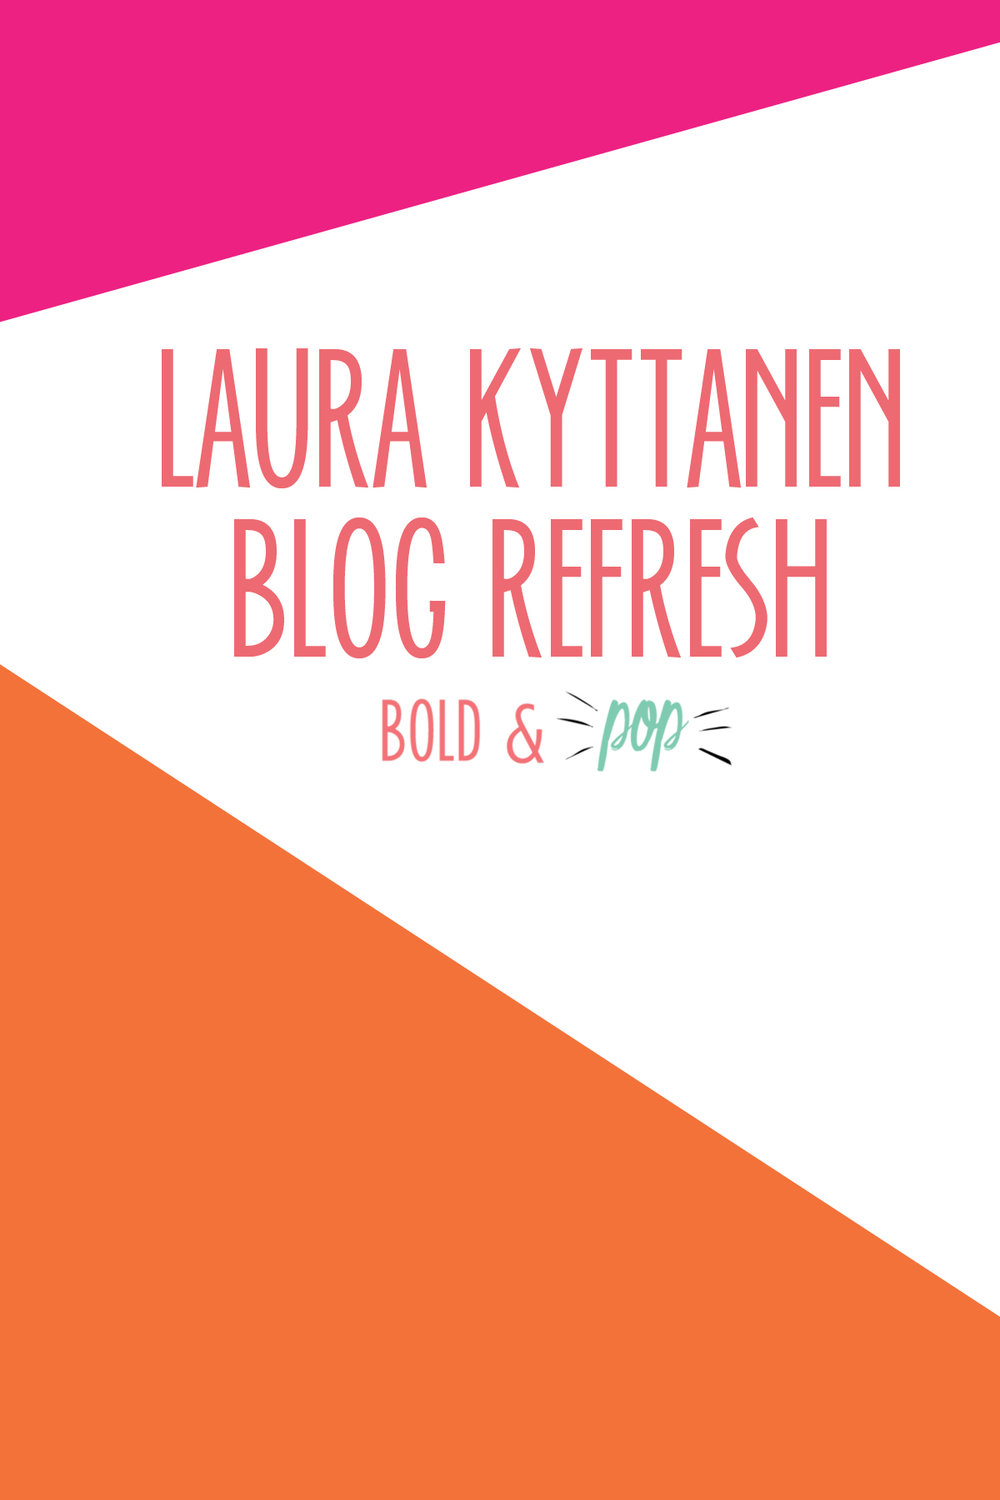 Bold & Pop : Laura Kyttanen Squarespace Blog Refresh